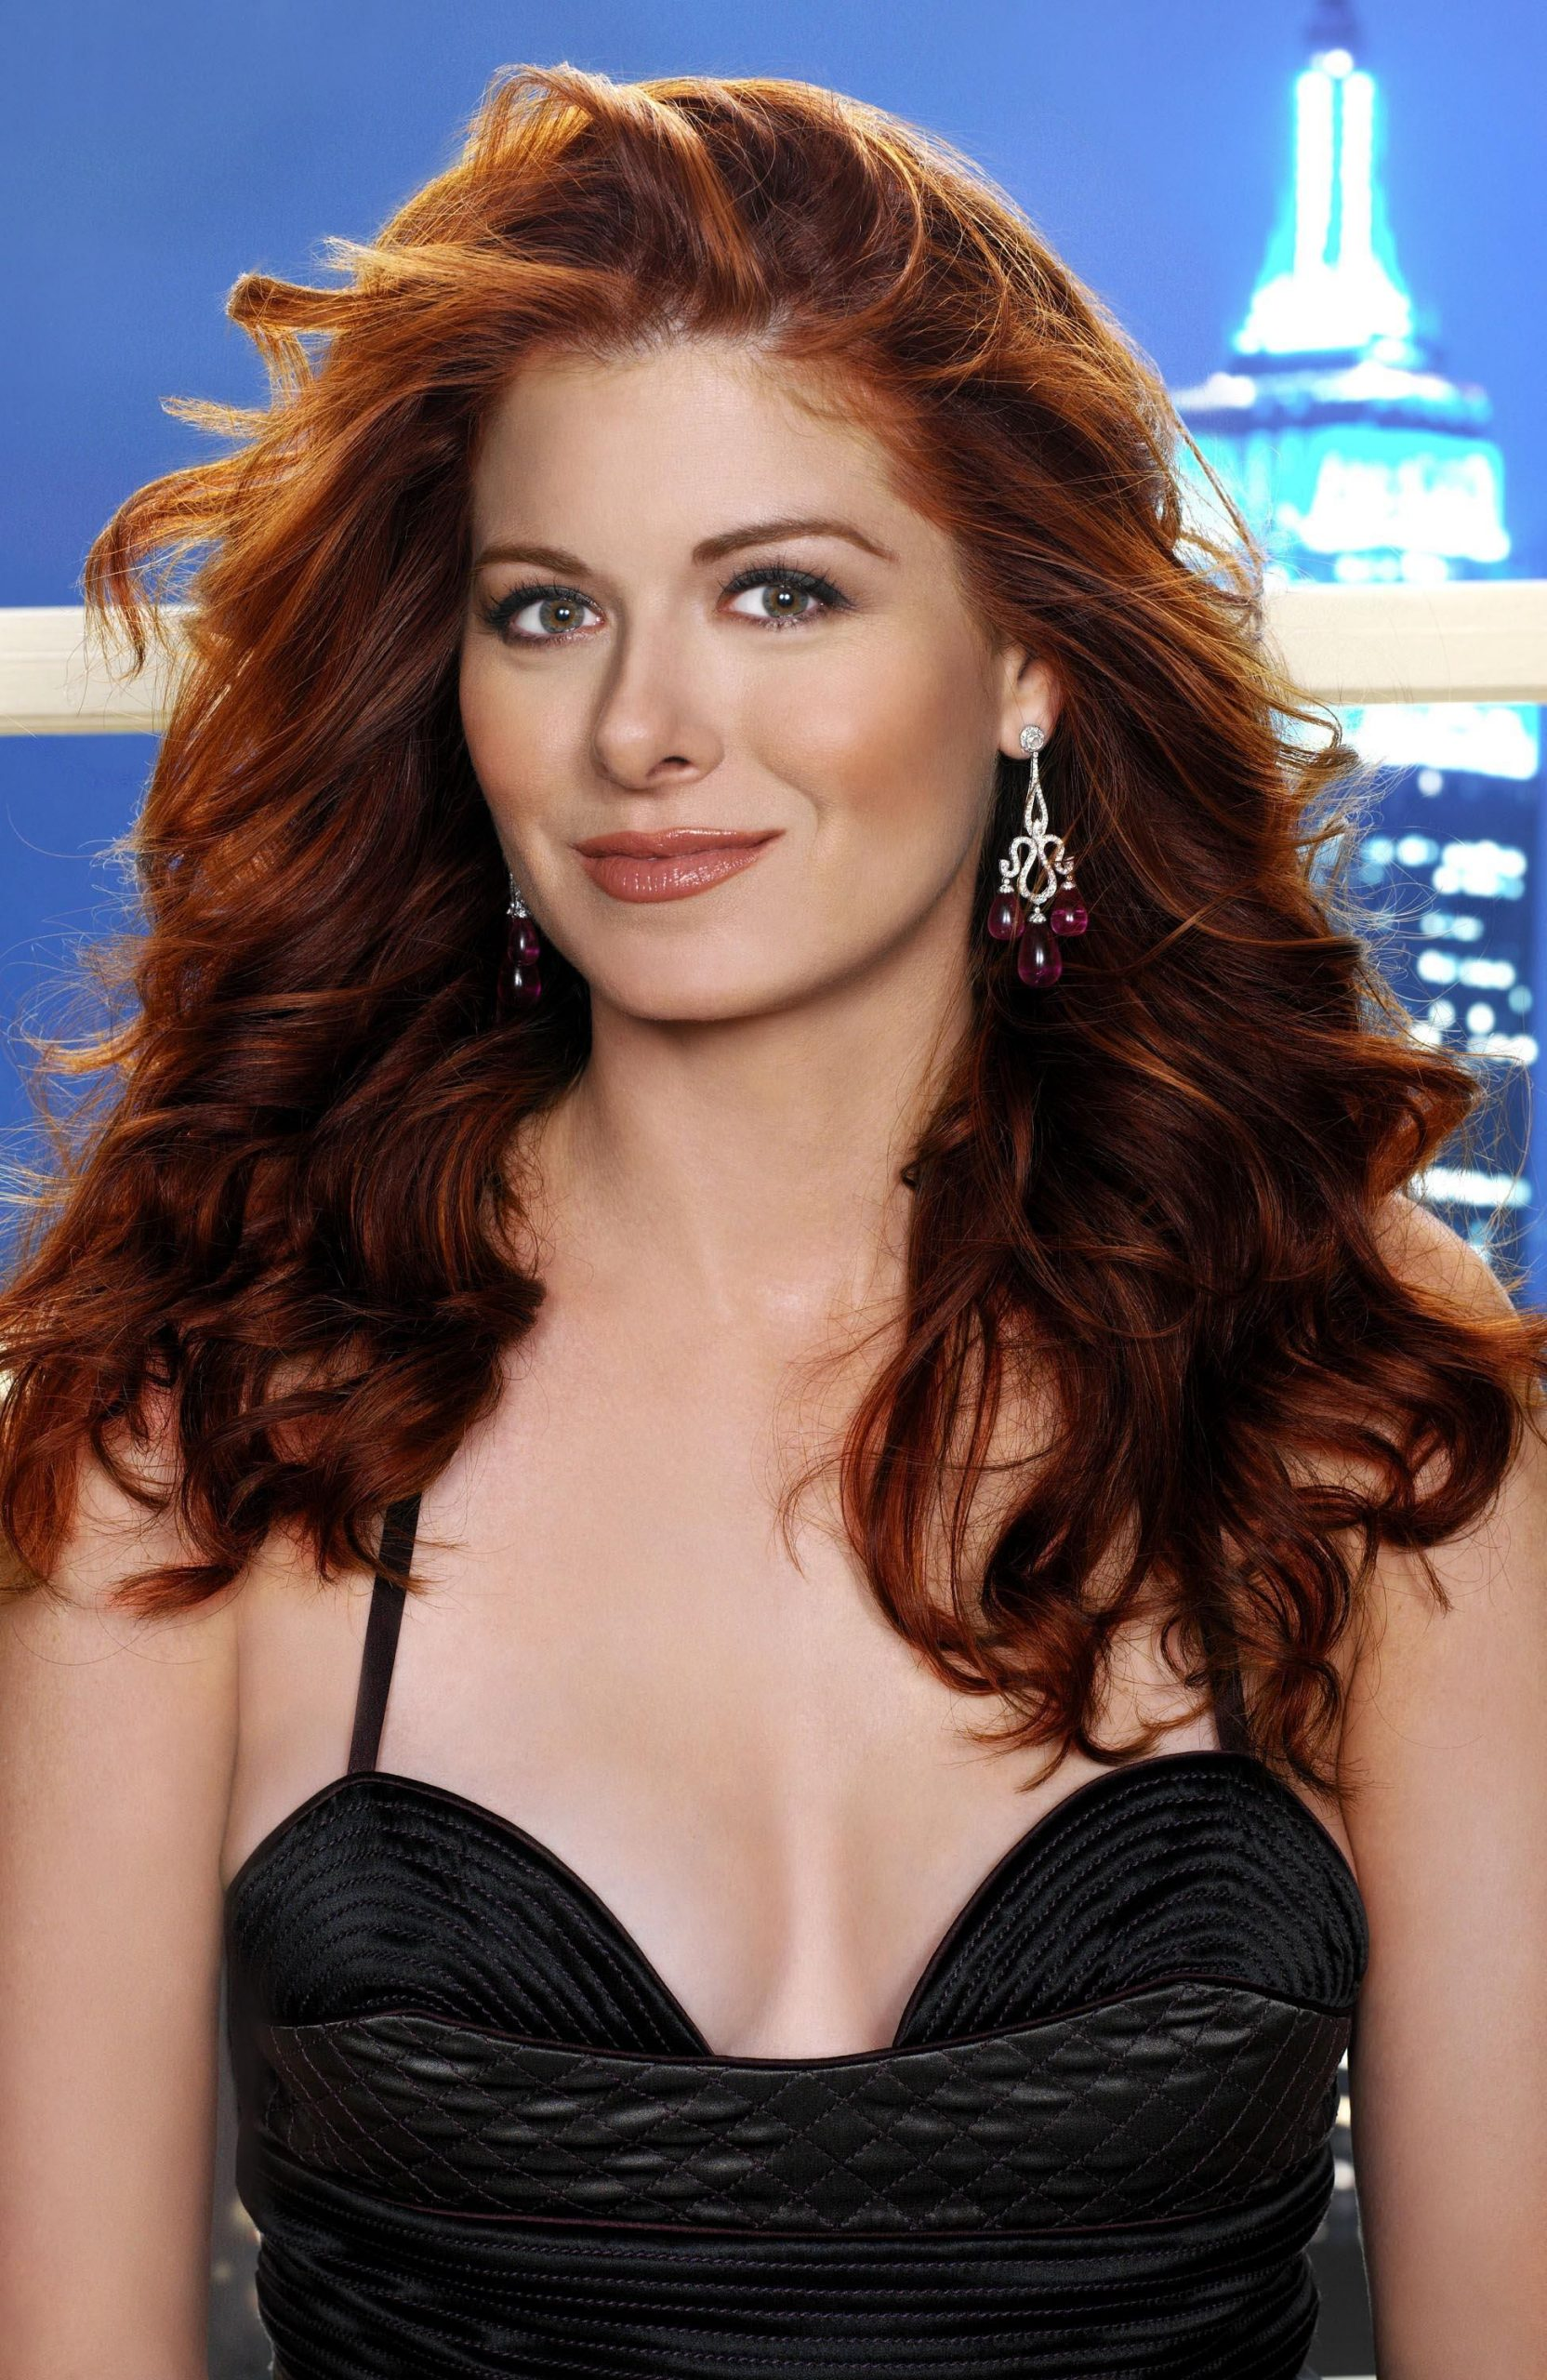 debra messing hot cleavage